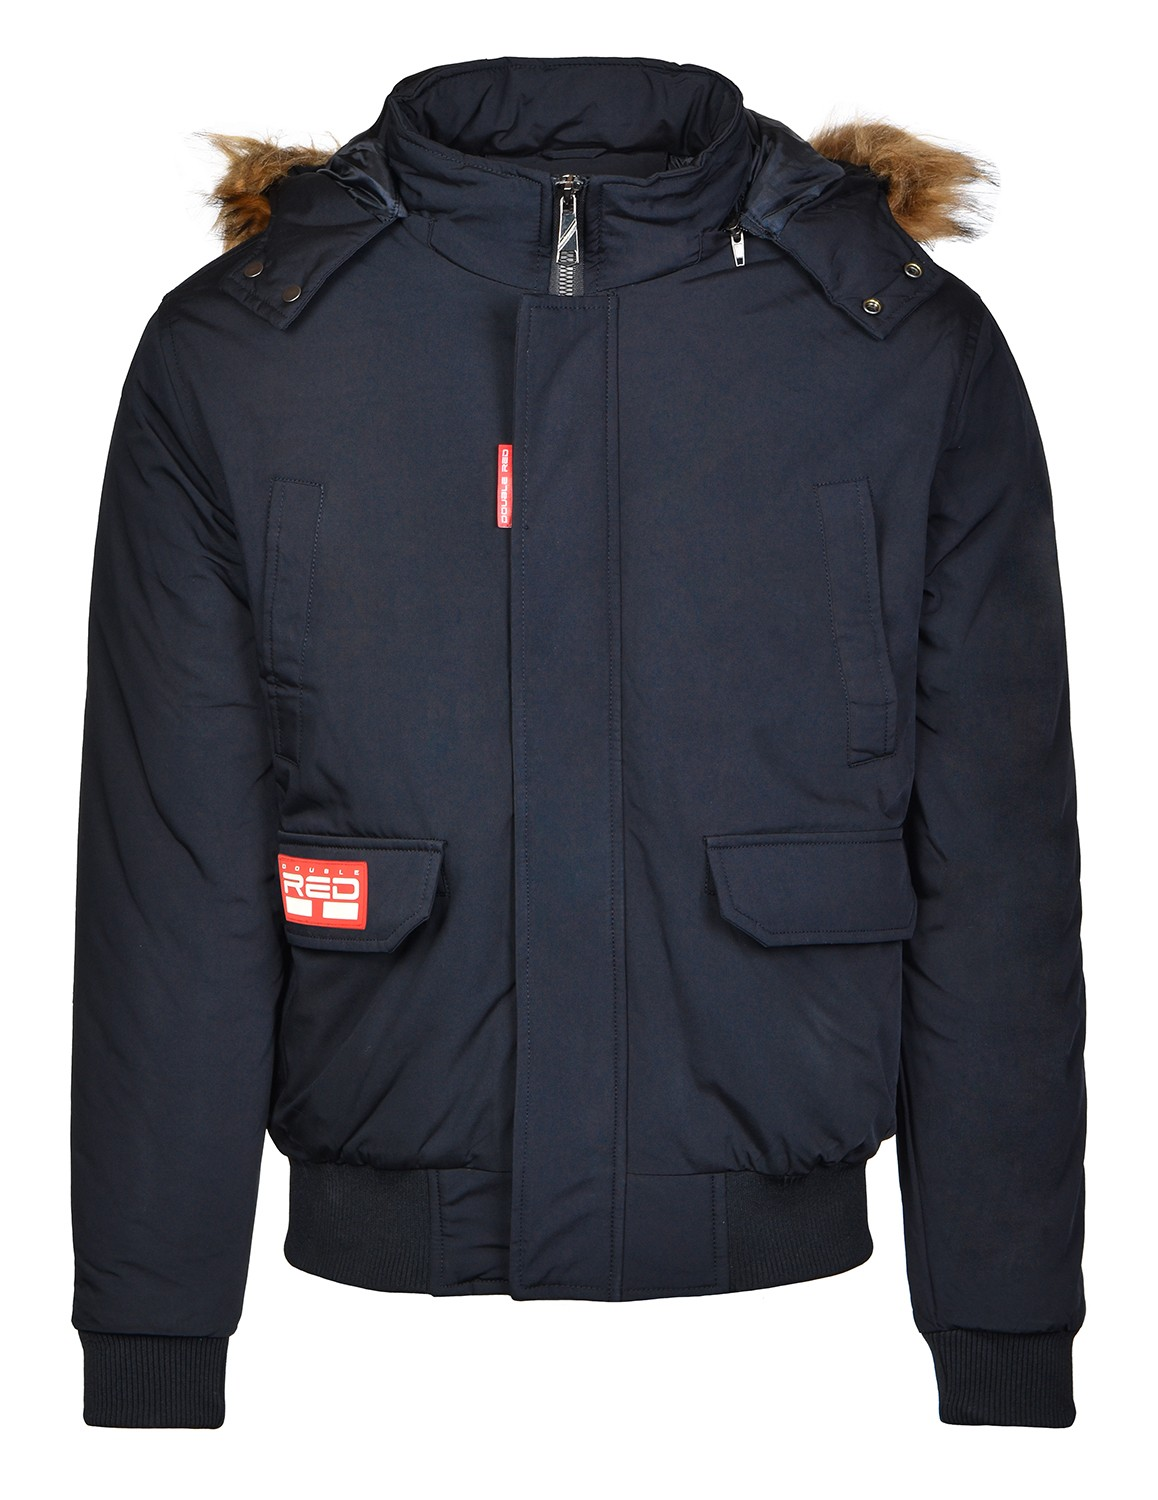 STREET HERO Jacket Winter Edition Dark Blue